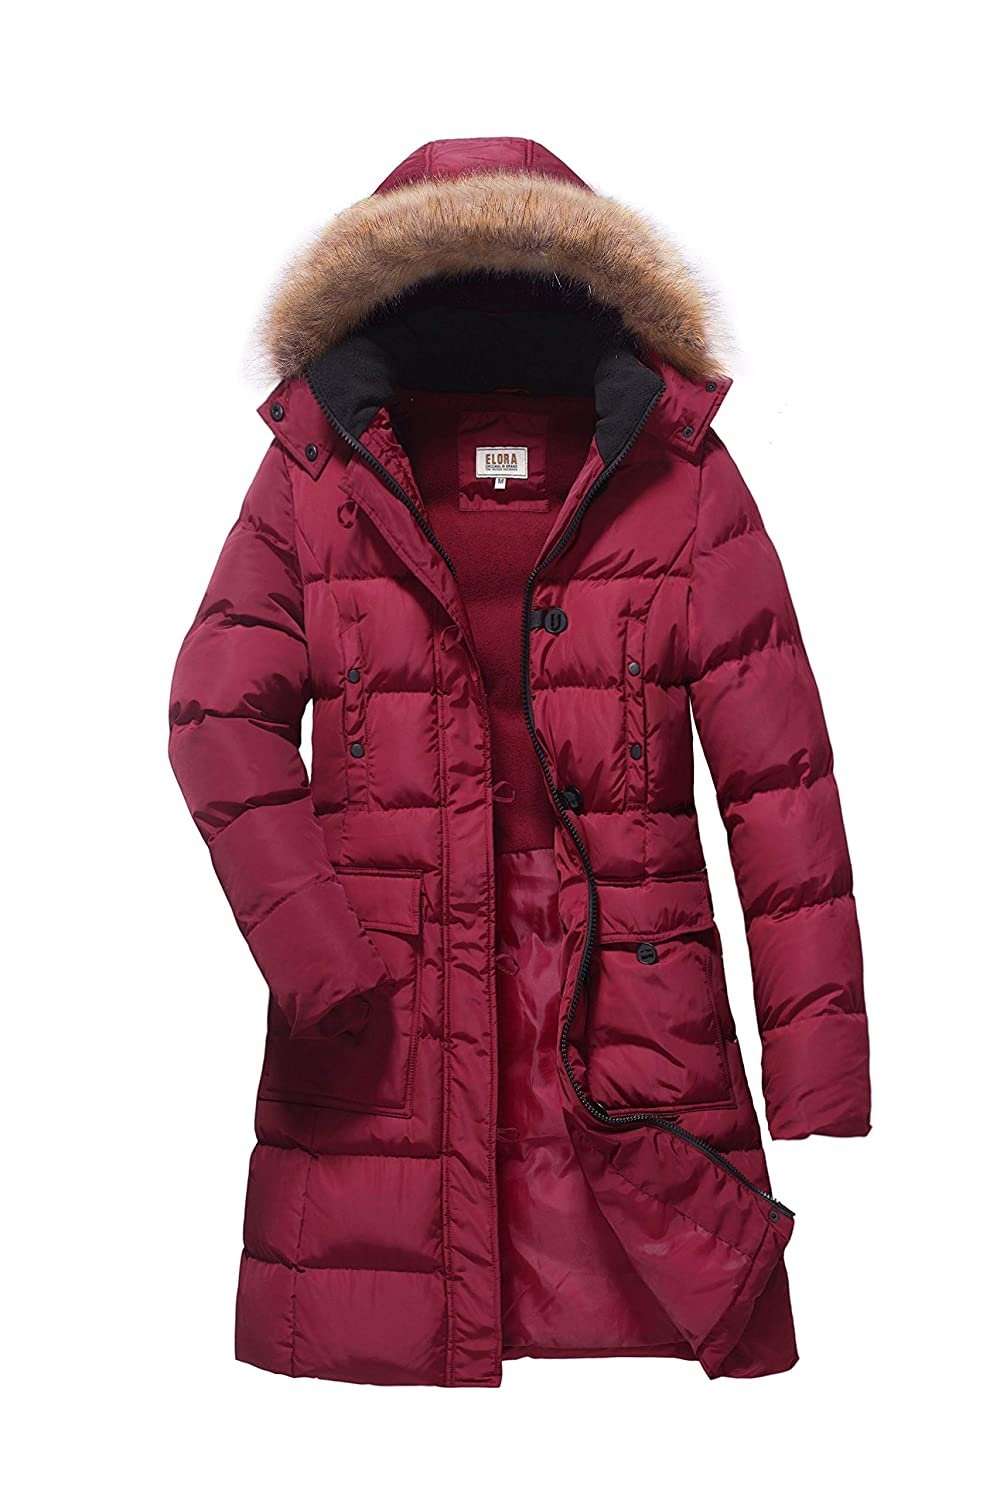 ELORA Women's Plus Size Winter Puffer Cargo Pocket Coat Fur Trim Removable Hood 2216-Plus Size